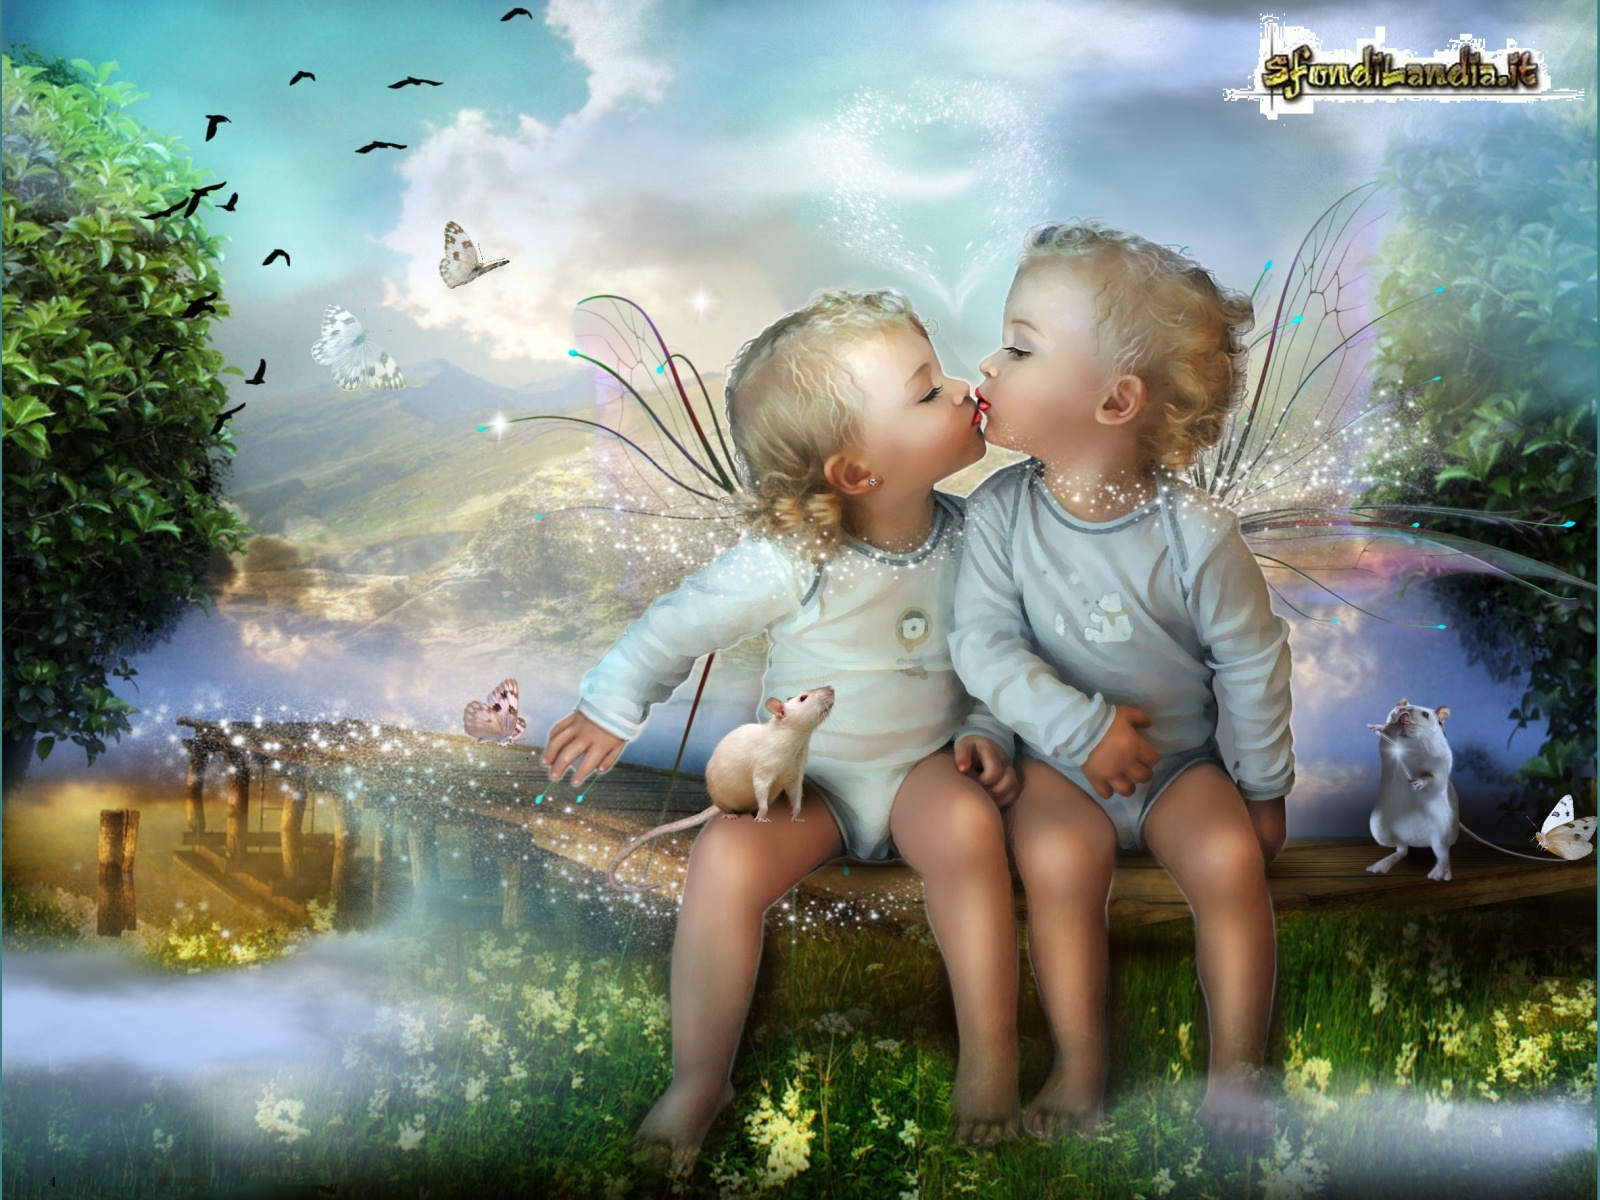 Love child couple Wallpaper : SfondiLandia.it Sfondo gratis di Piccoli angeli per desktop, smartphone Android e iPhone in ...